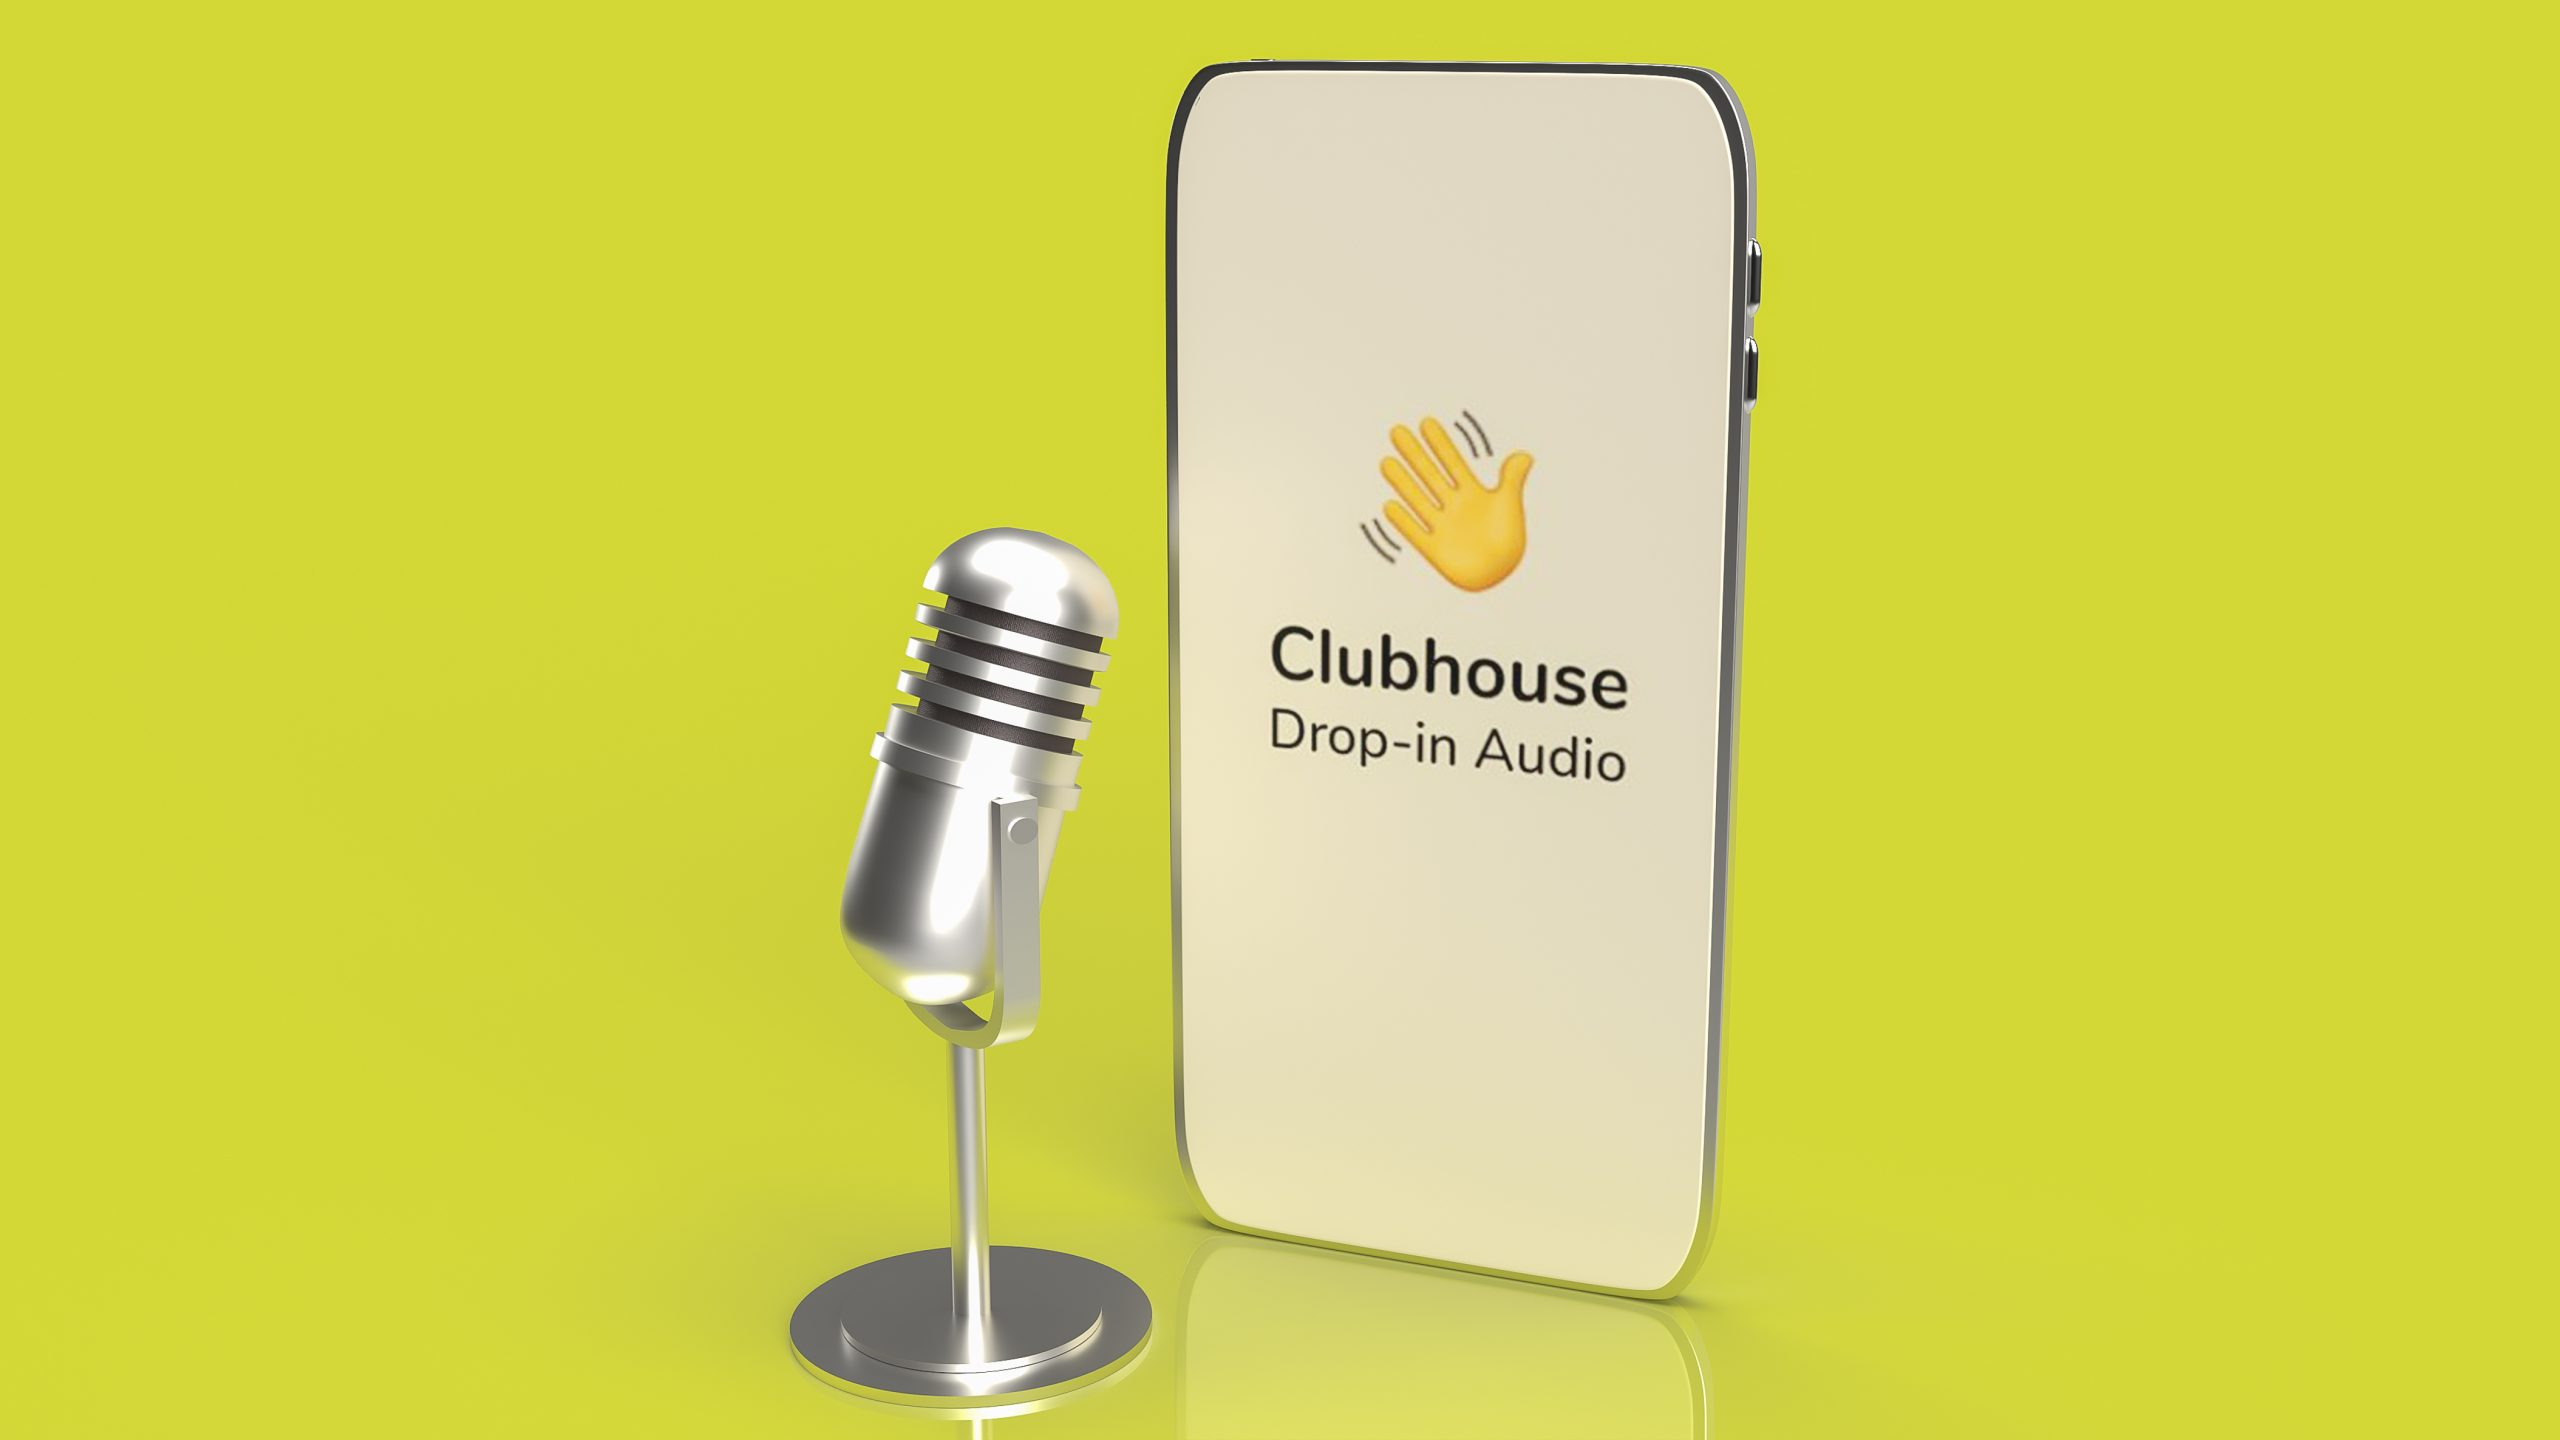 Ways to build your presence on Clubhouse